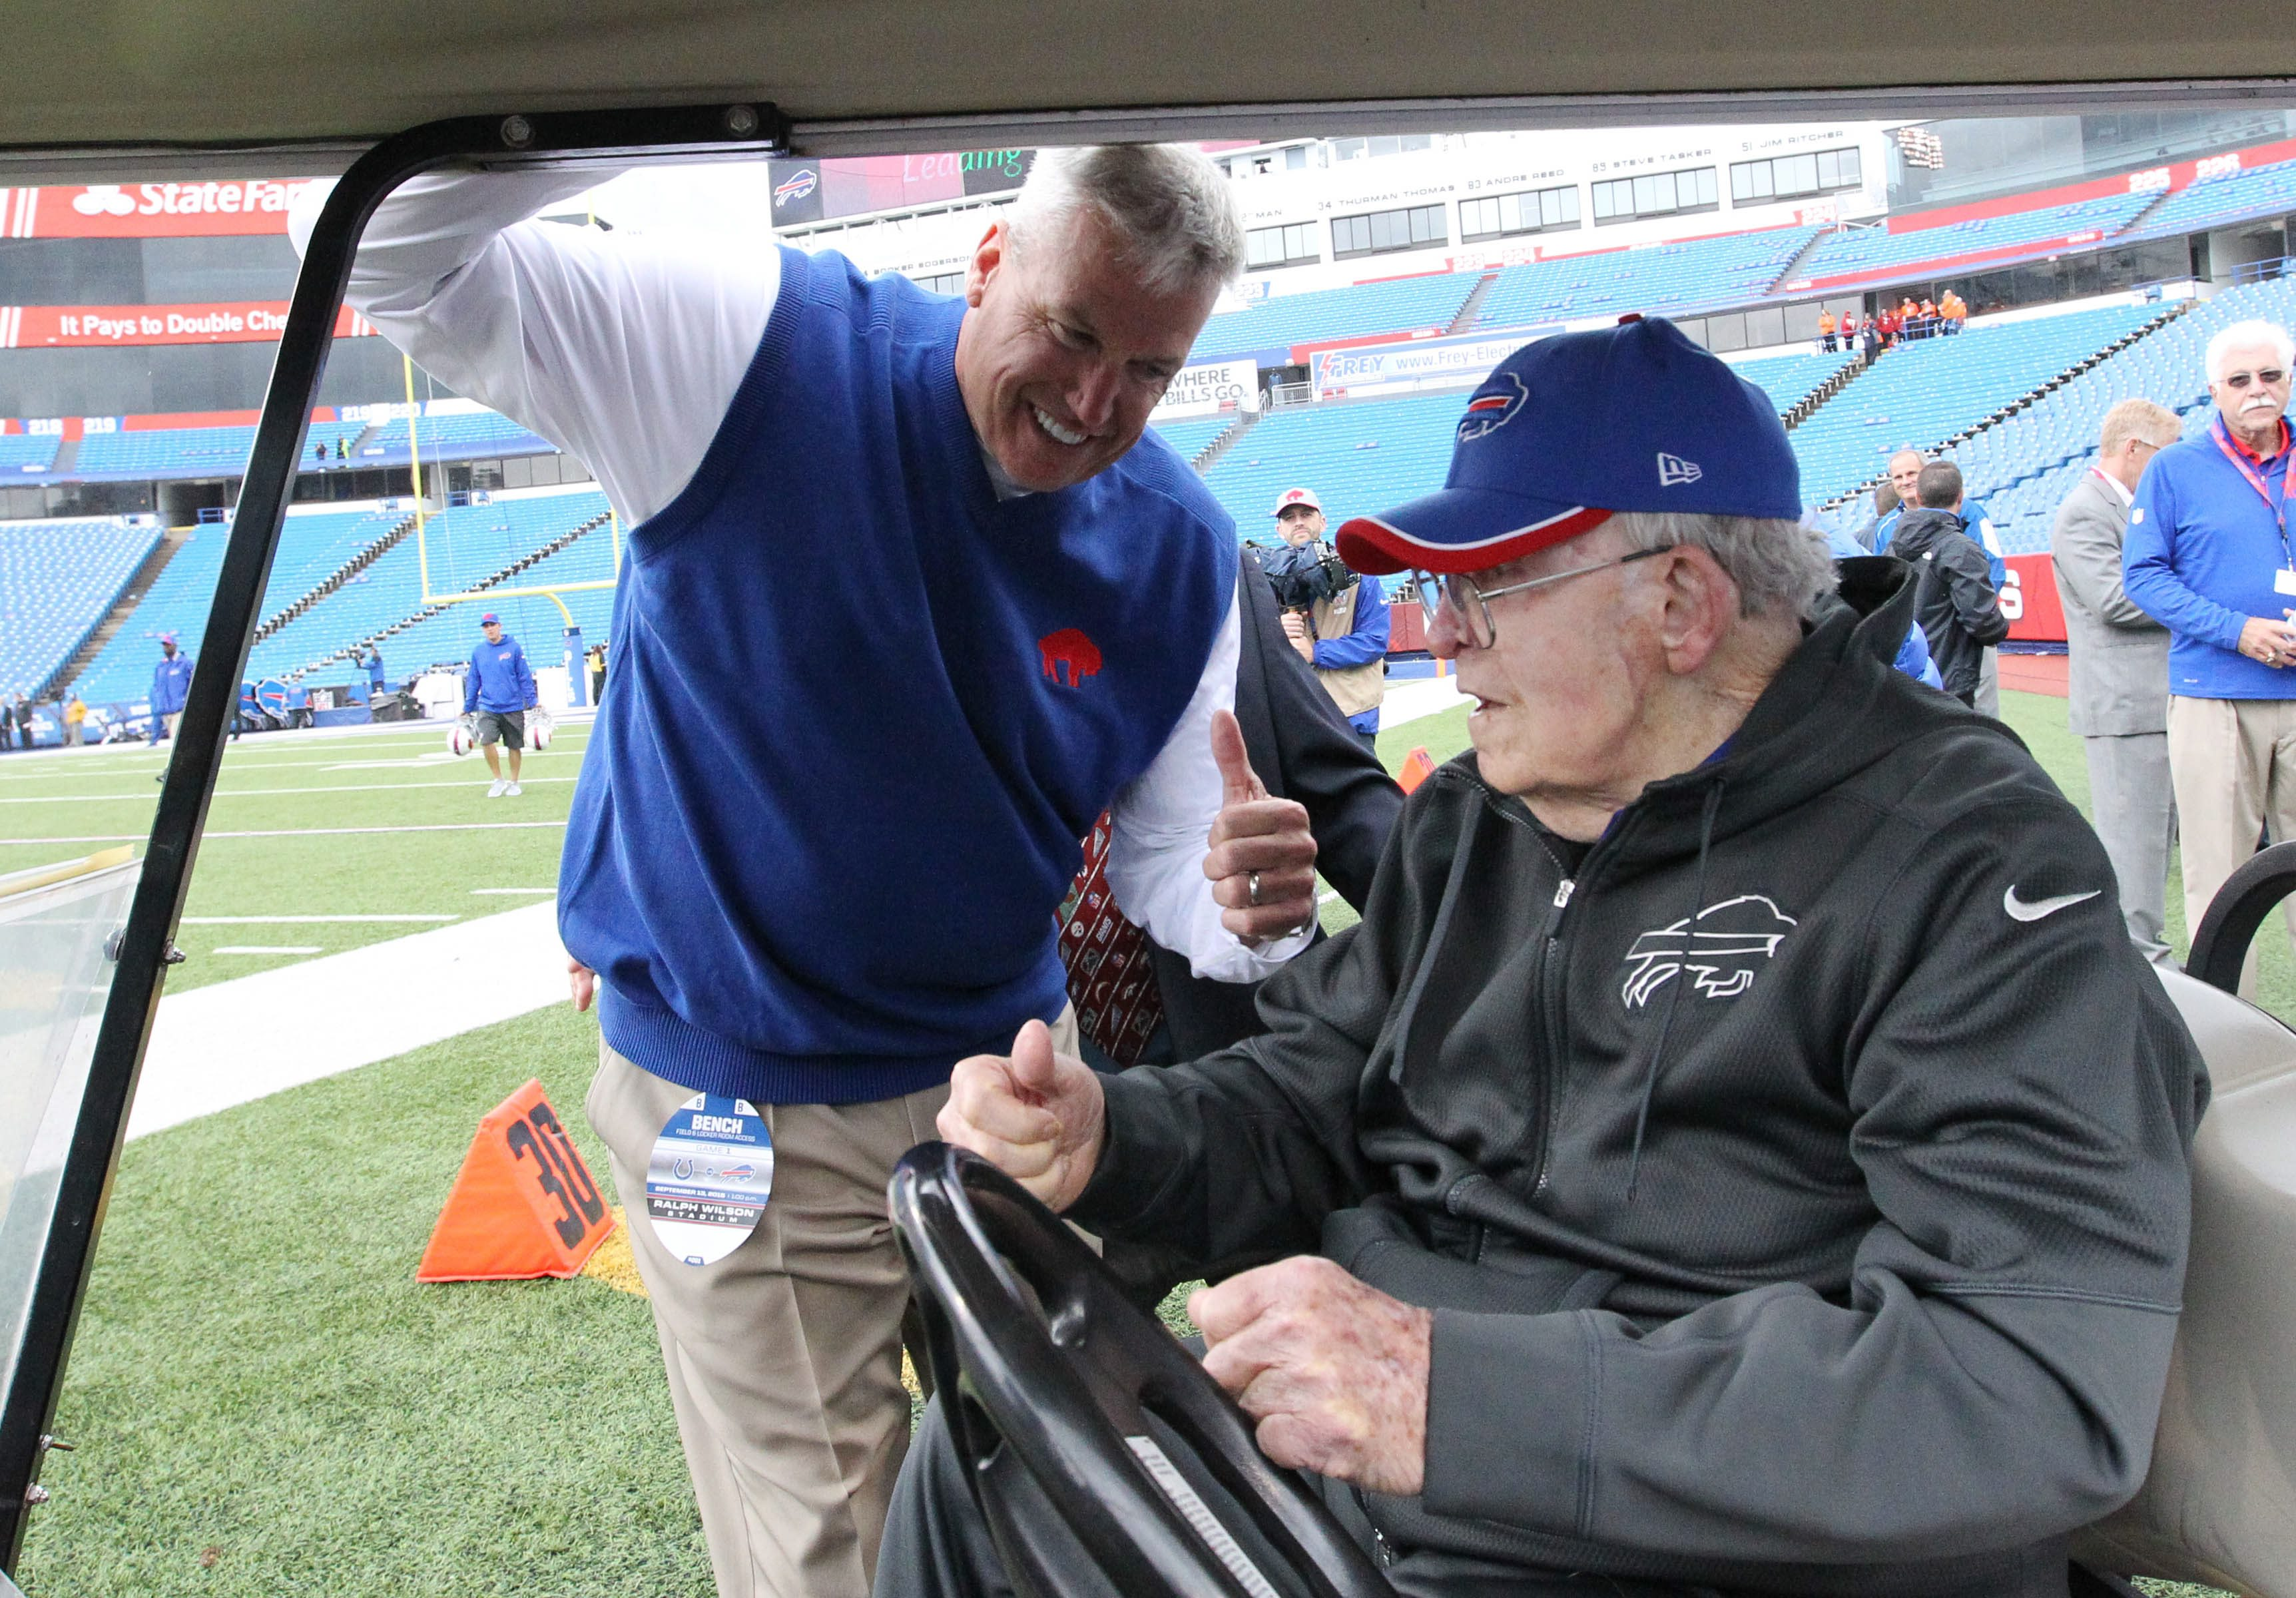 Buffalo Bills head coach Rex Ryan and his father, Buddy Ryan, before the game at Ralph Wilson Stadium in Orchard Park, N.Y. on Sunday, Sept. 13, 2015.  (James P. McCoy/ Buffalo News)